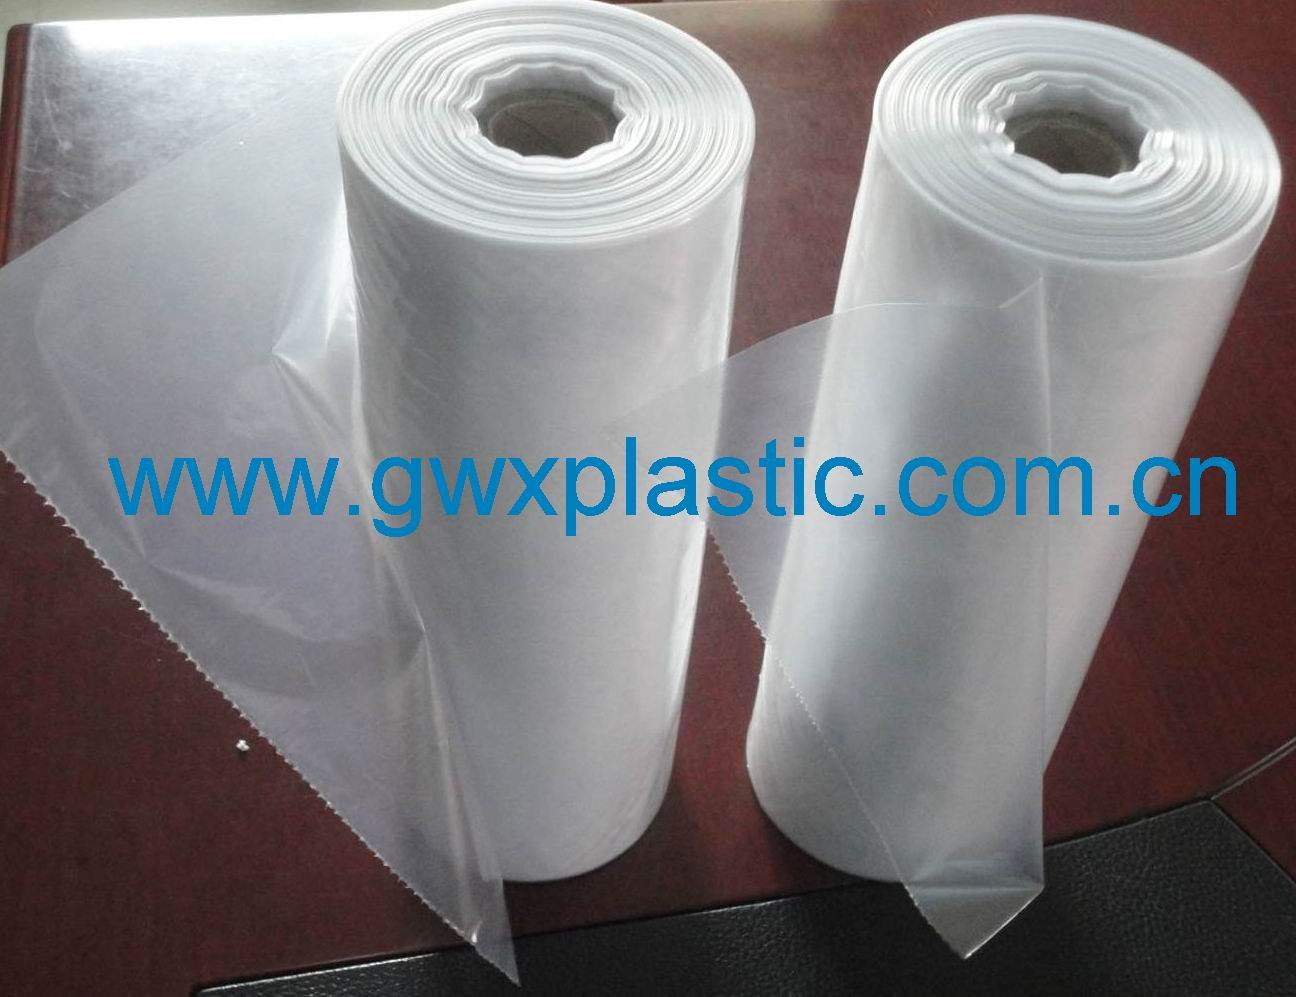 Plastic PE food bags on roll with paper core